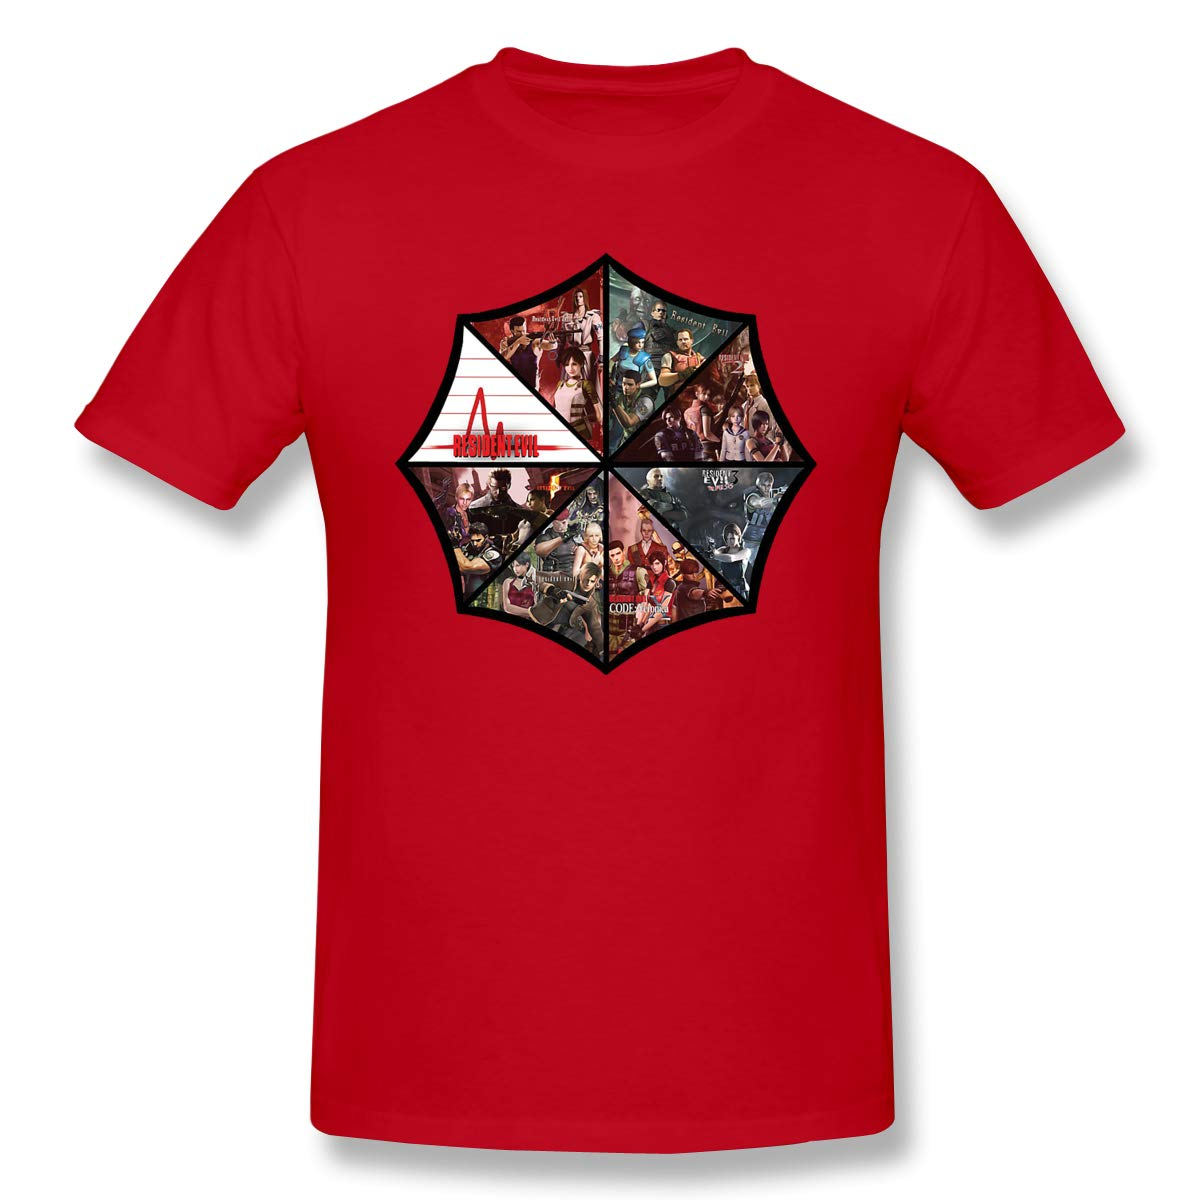 Finehorse Funny Cool Red T Shirt Short Sleeve Resident Evil Graphic Tees Tops